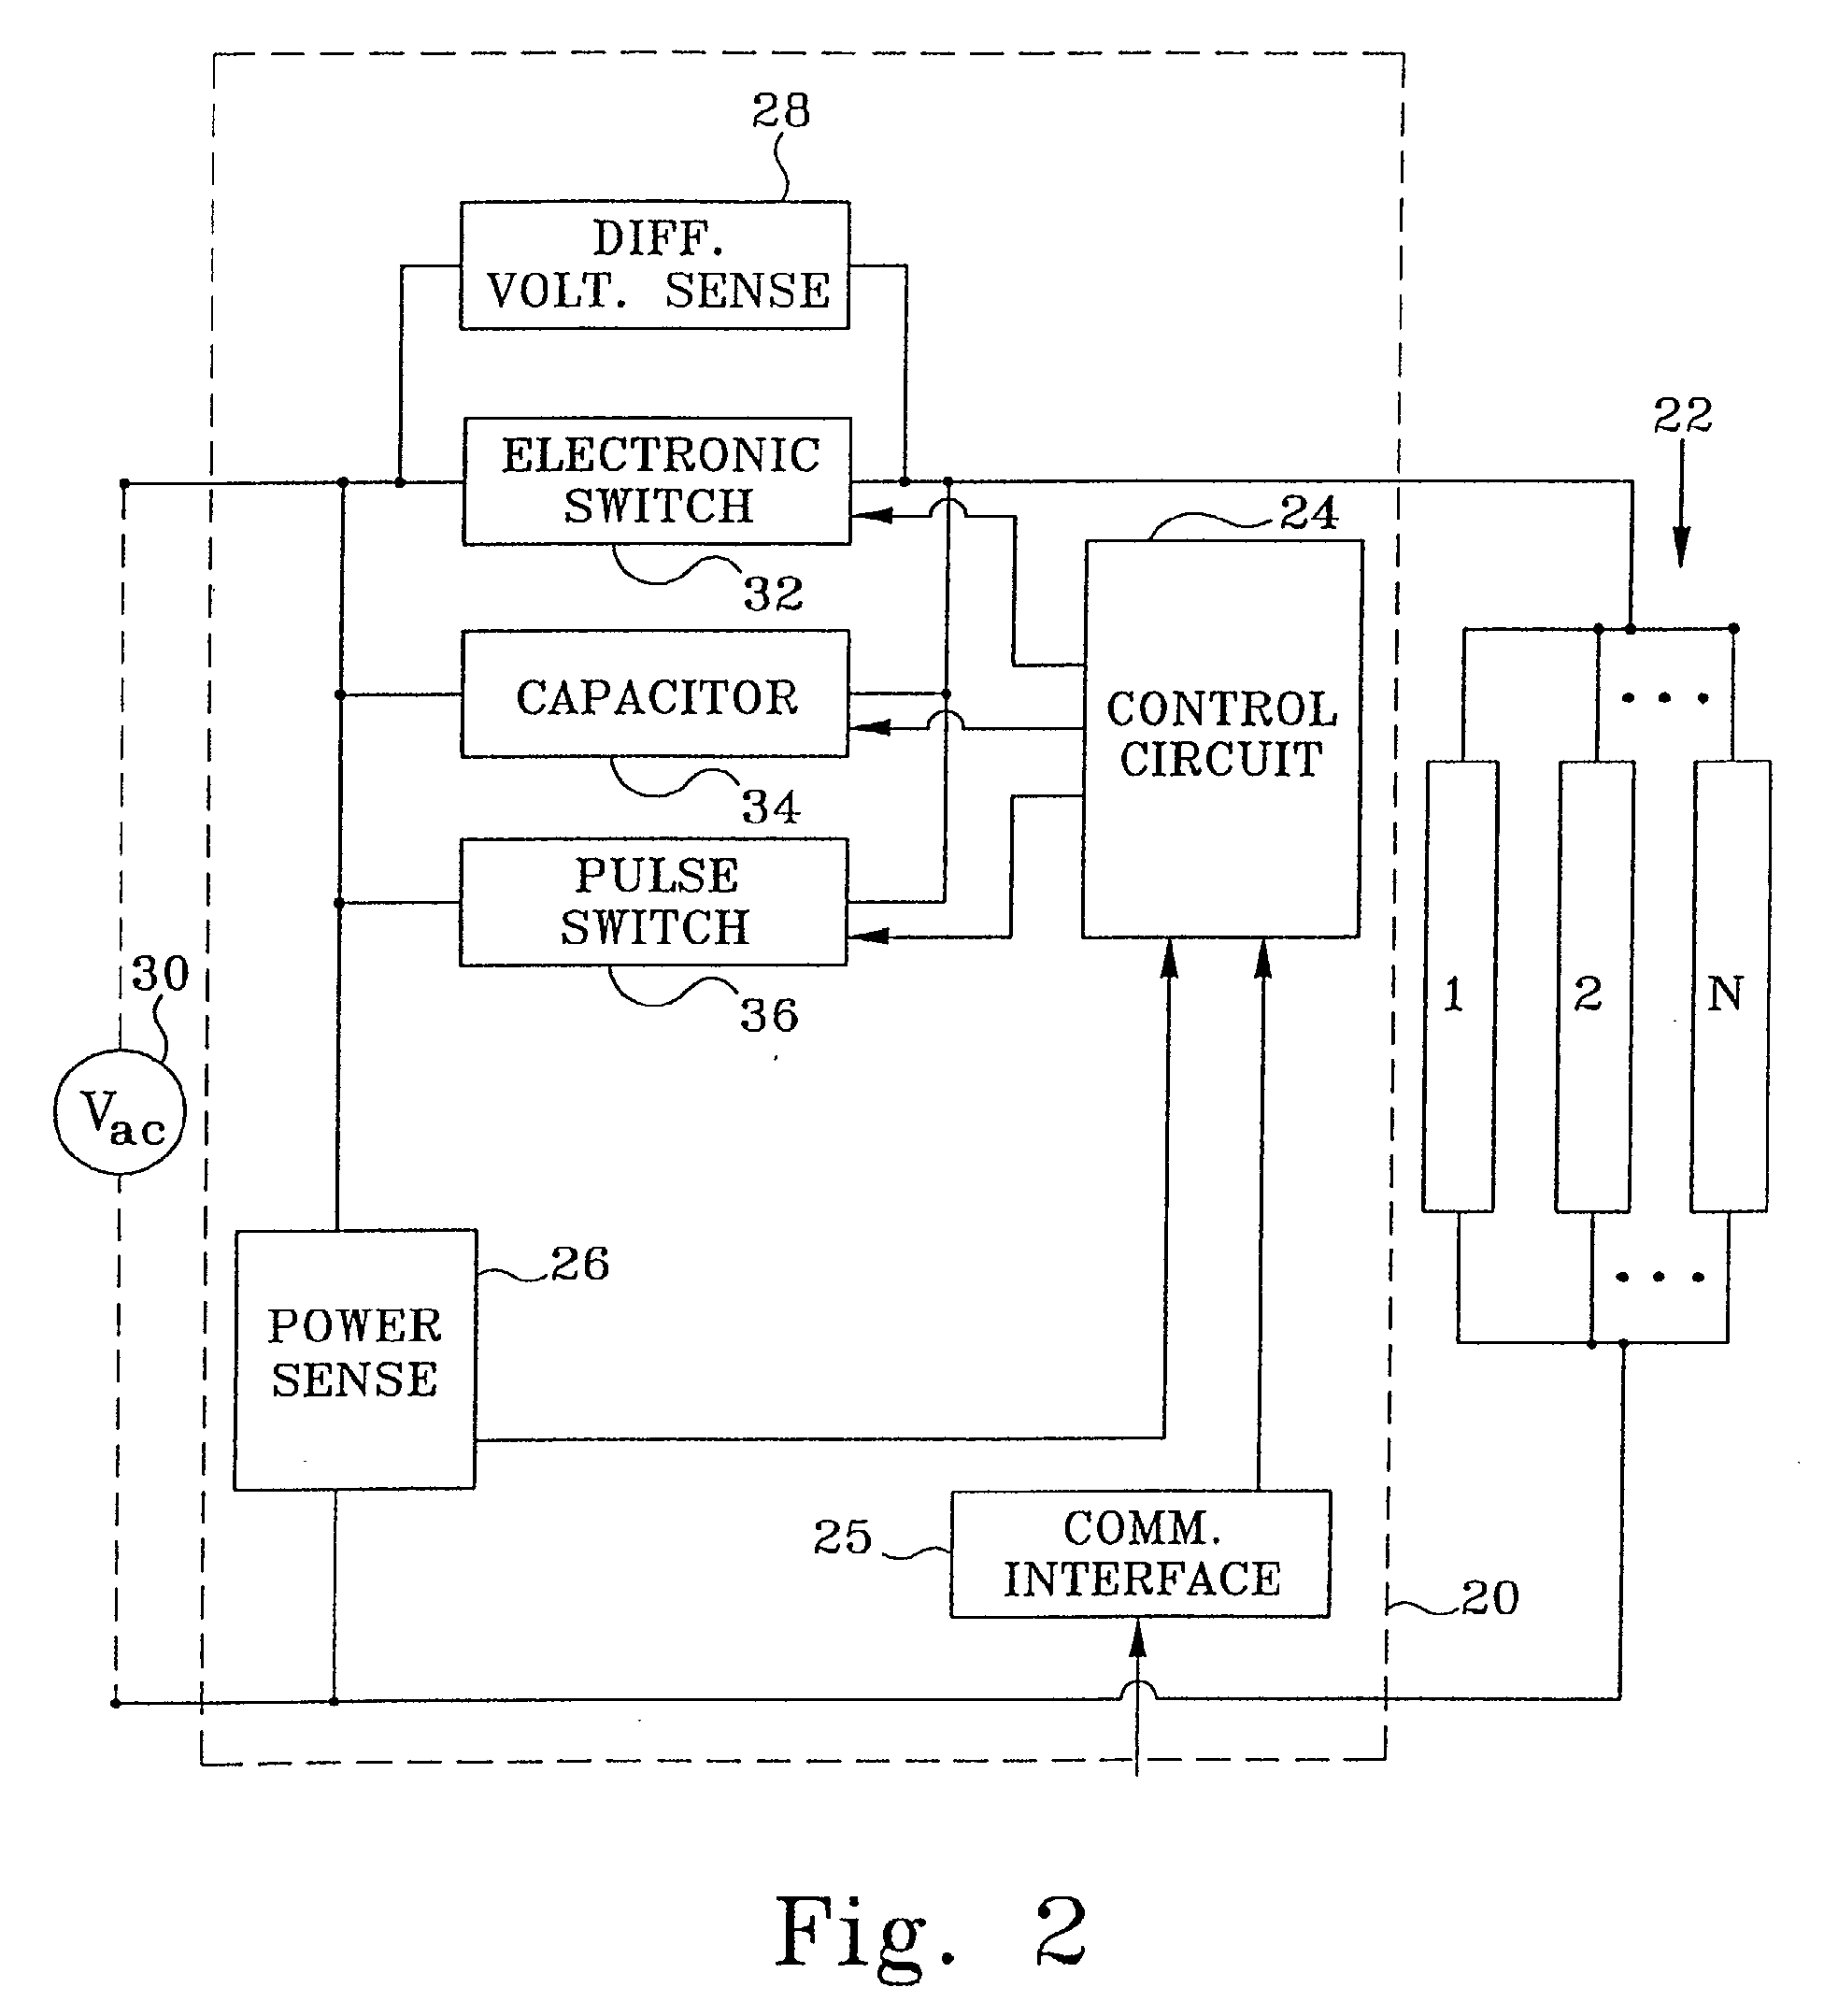 Patent Ep1300935a2 Energy Saving Power Control System Google Patents Ac Switch With Optotriaccircuit Diagram Drawing